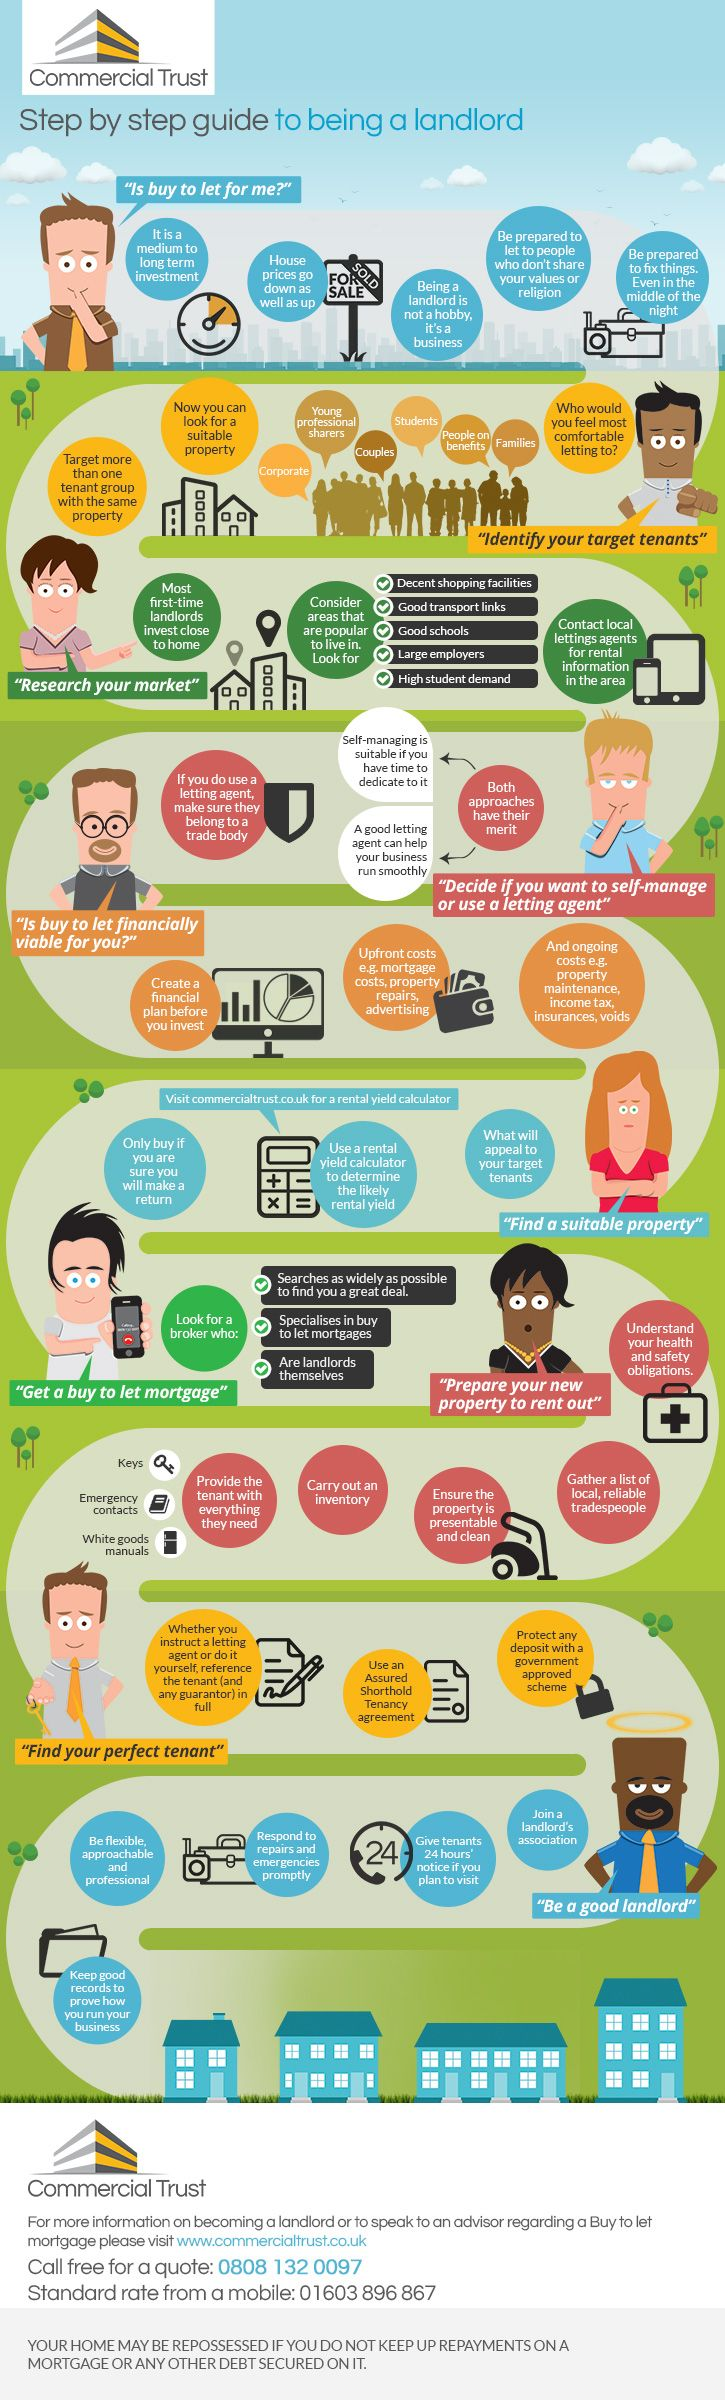 Guide To Being A Landlord Infographic Being A Landlord Rental Property Investment Buy To Let Mortgage